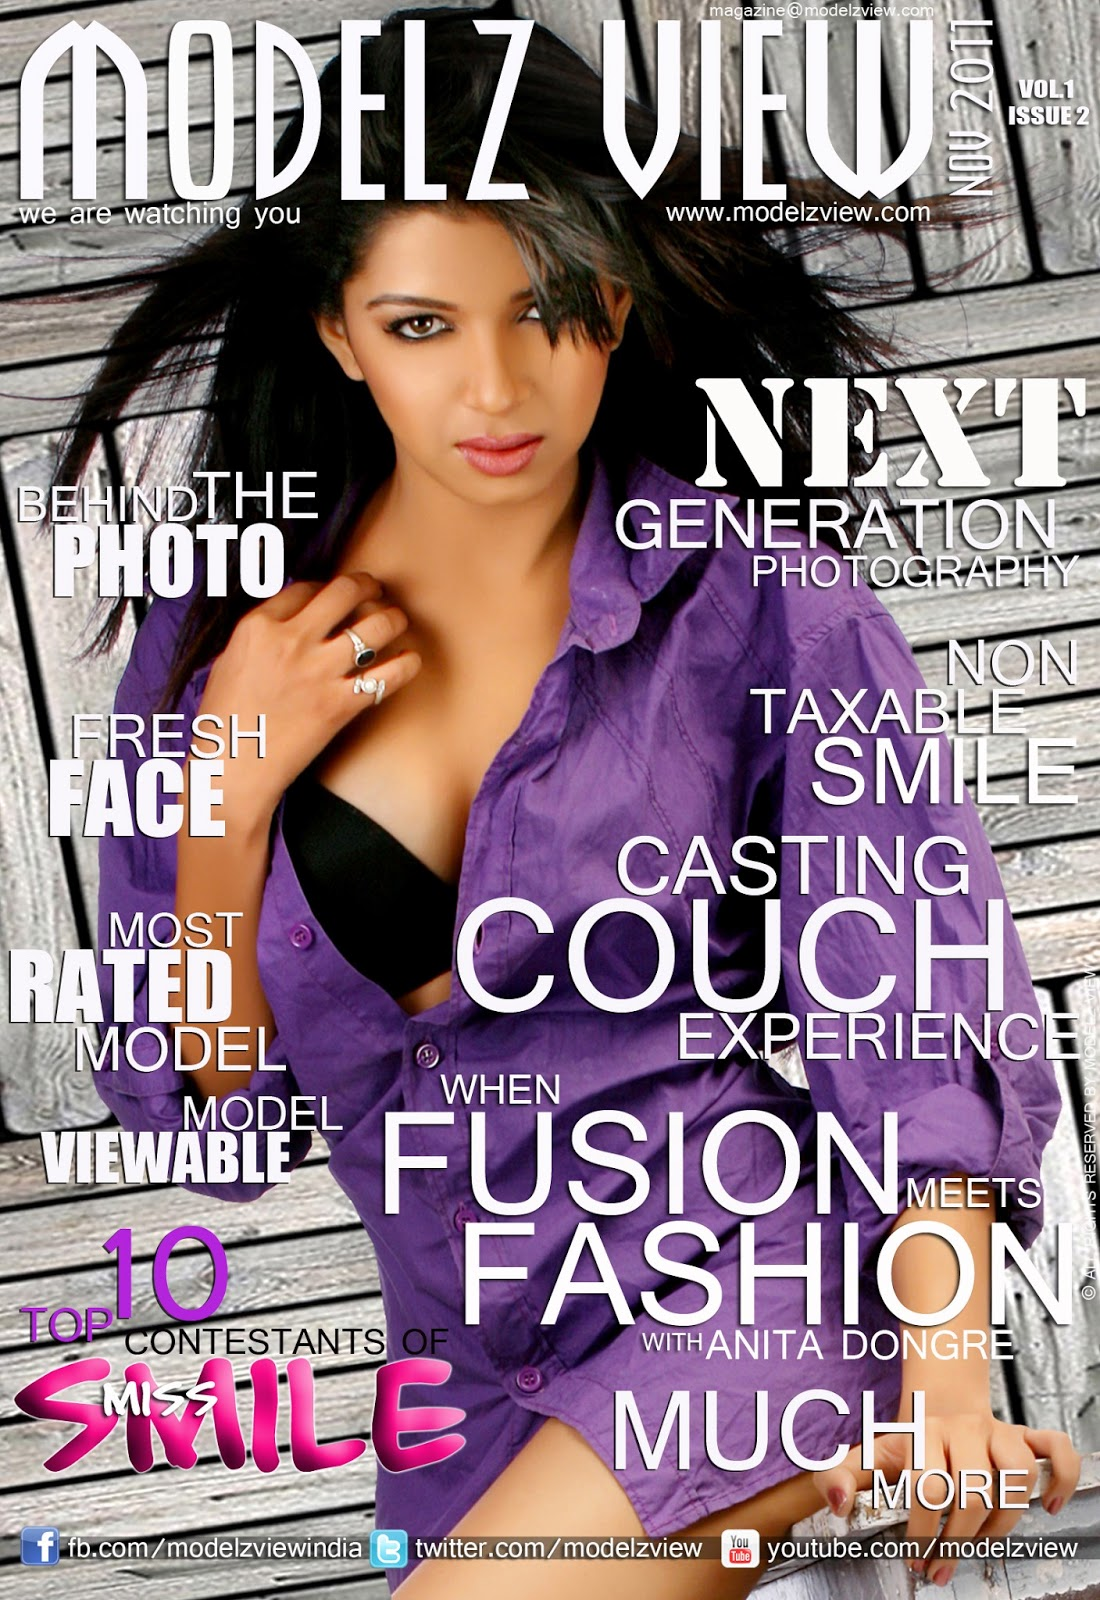 modelz_view_magazine_nov_2011